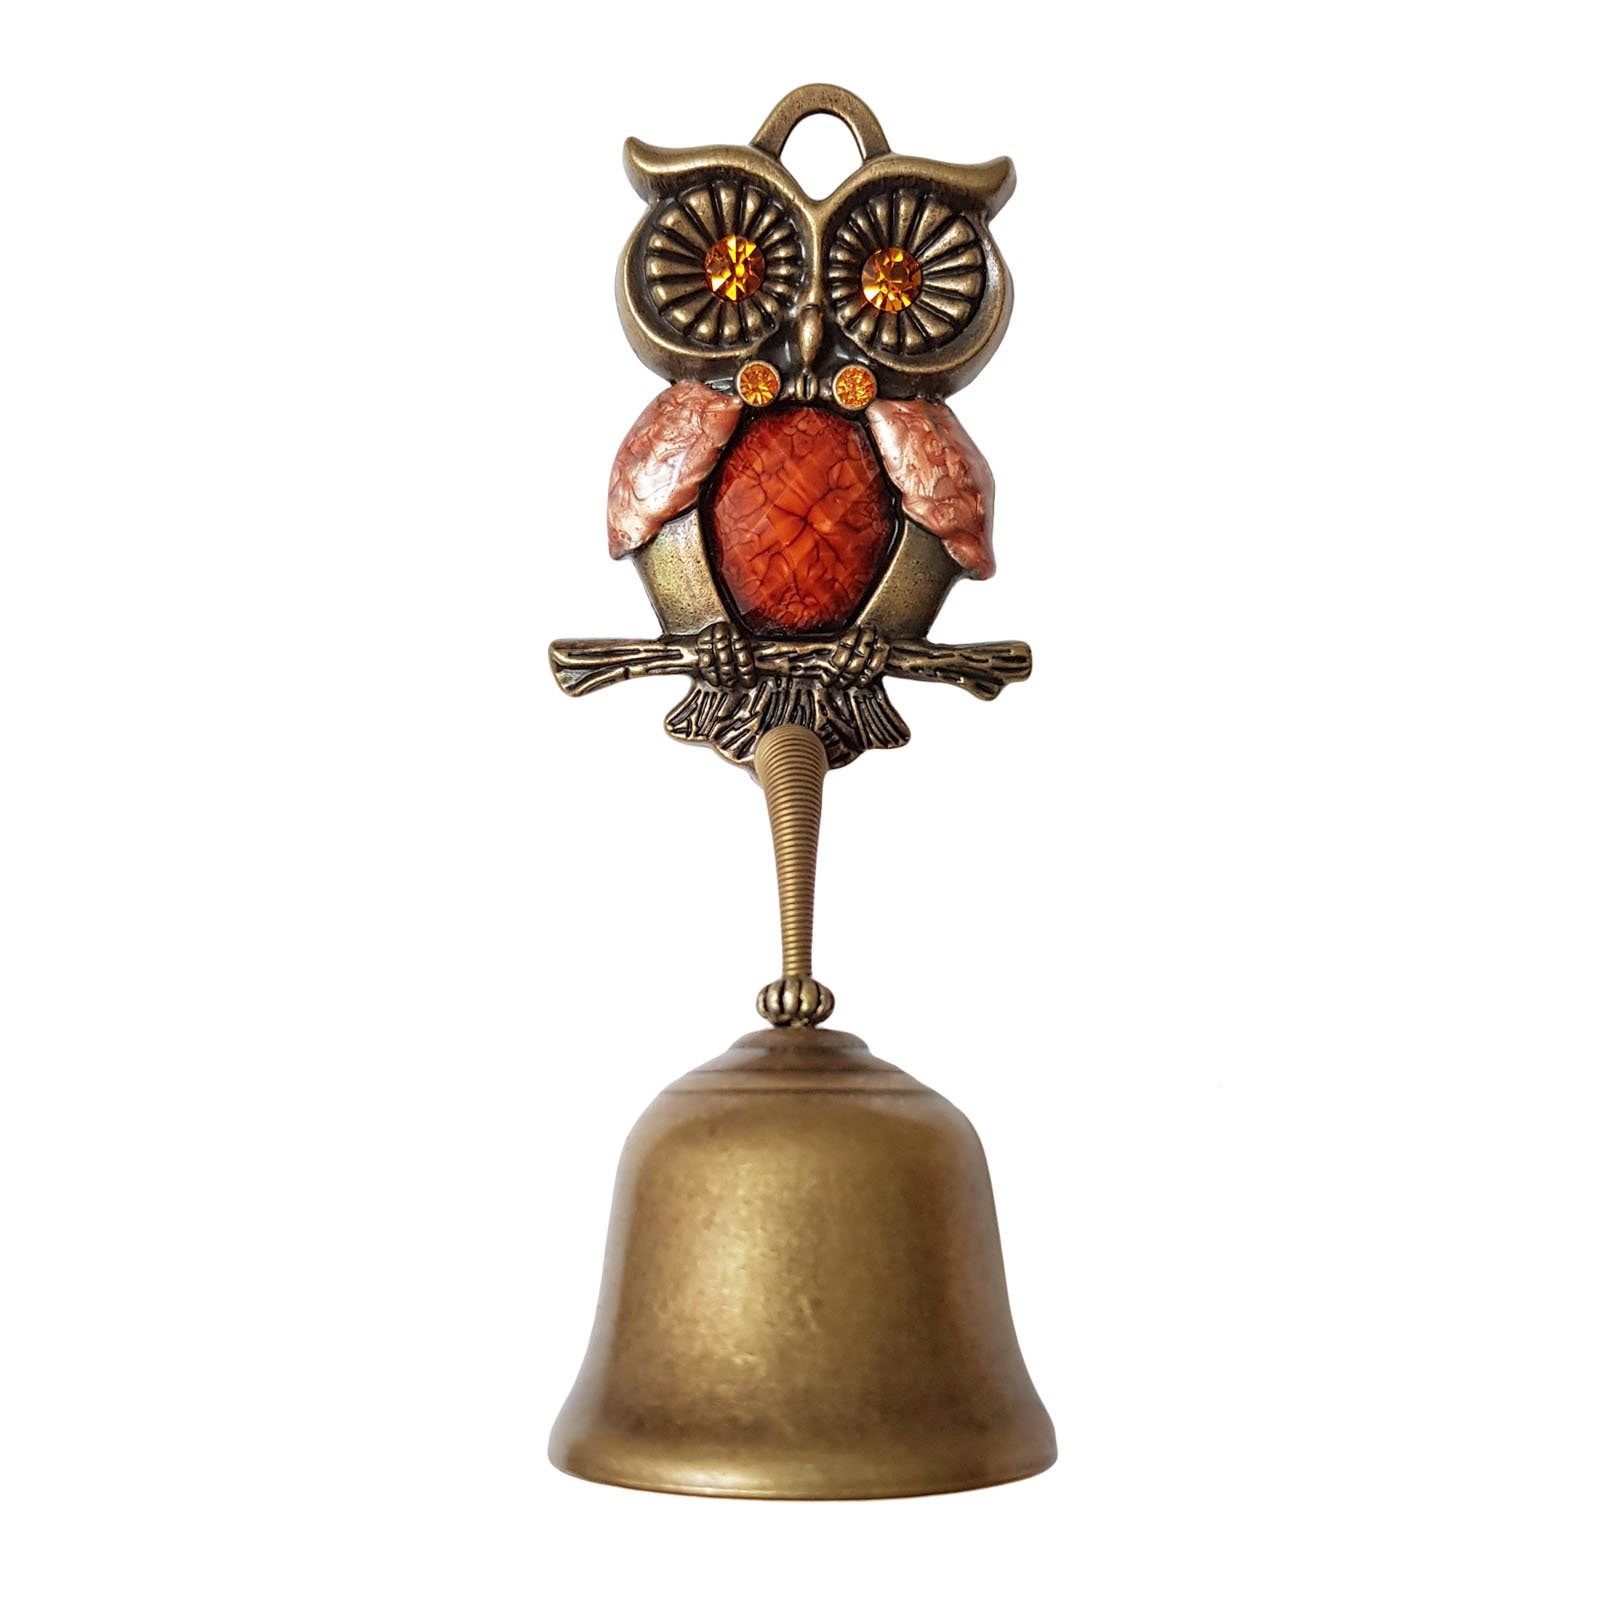 Owl Springy Shopkeepers Bell Entrance Alert Chime Compact & Lightweight Unique Design Home Decoration Doorbell A-Type (Orange) by YG-1 (Image #1)